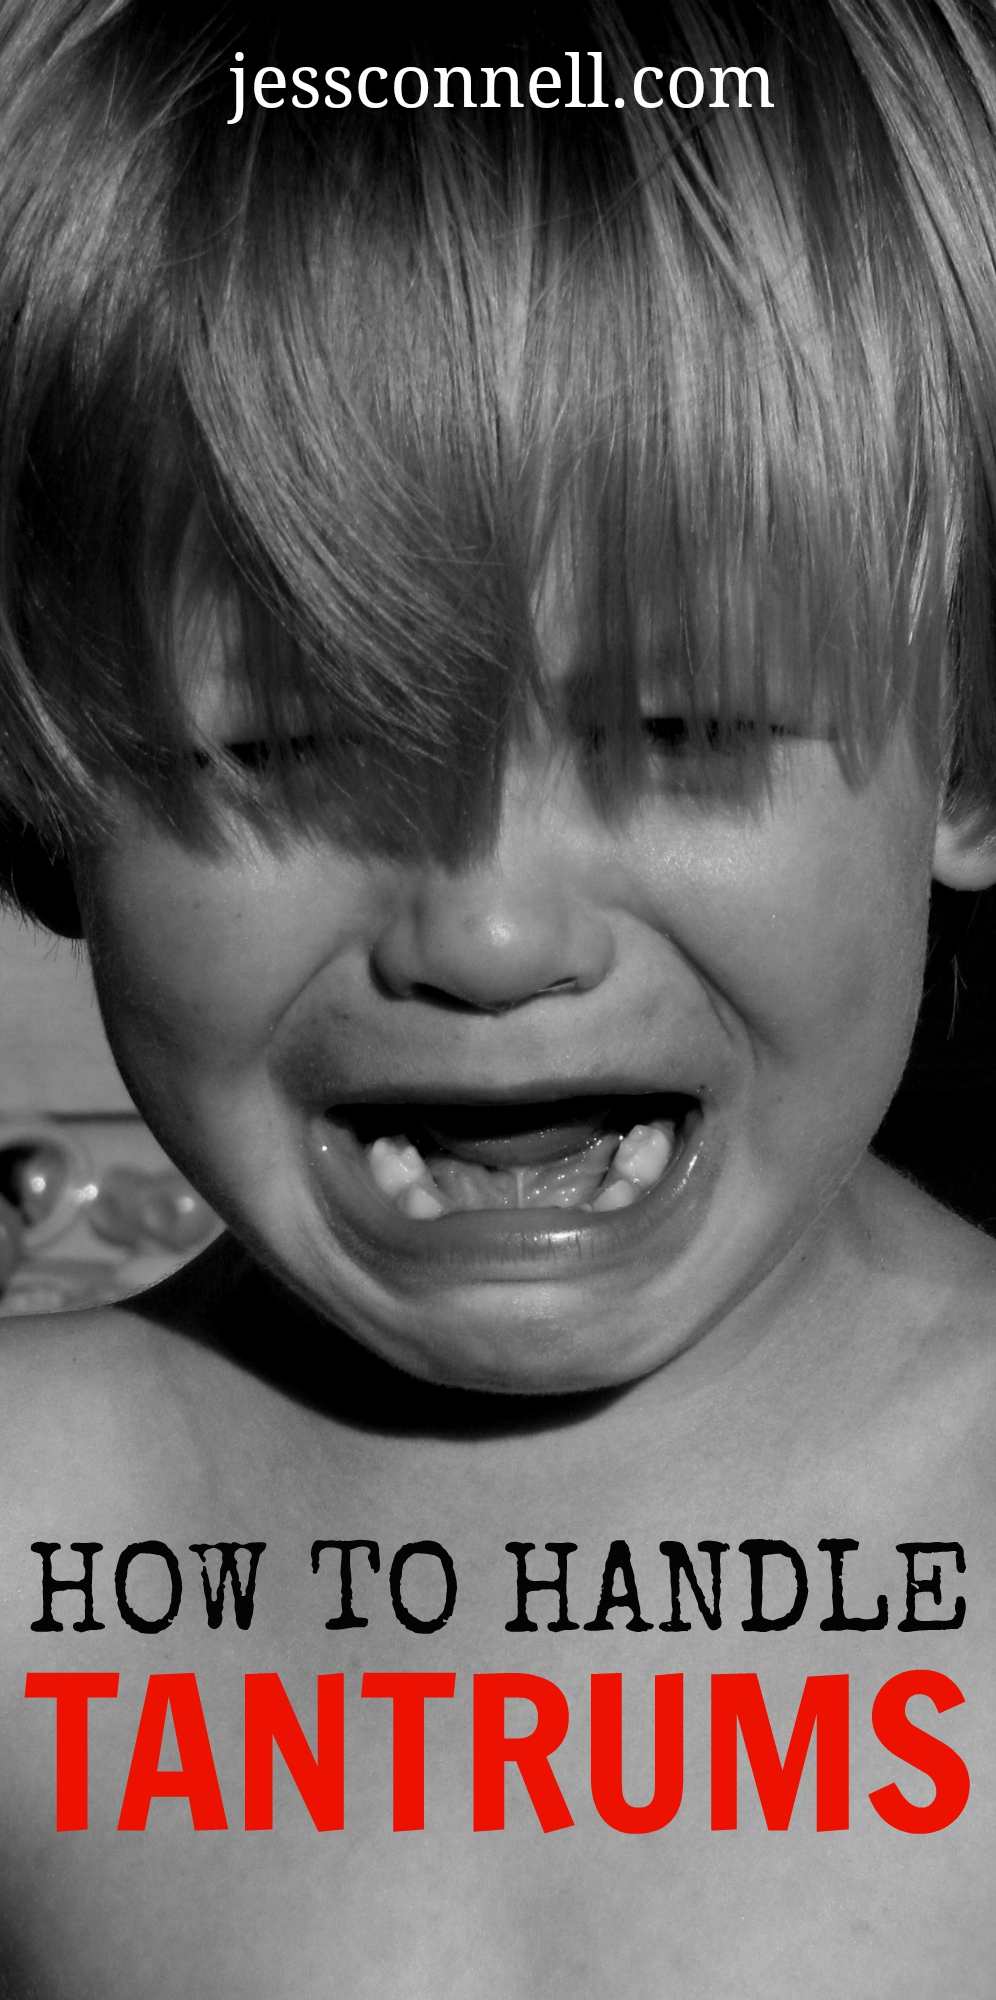 How to Handle Tantrums // jessconnell.com // step-by-step walkthrough of dealing with (rather than ignoring) temper tantrums